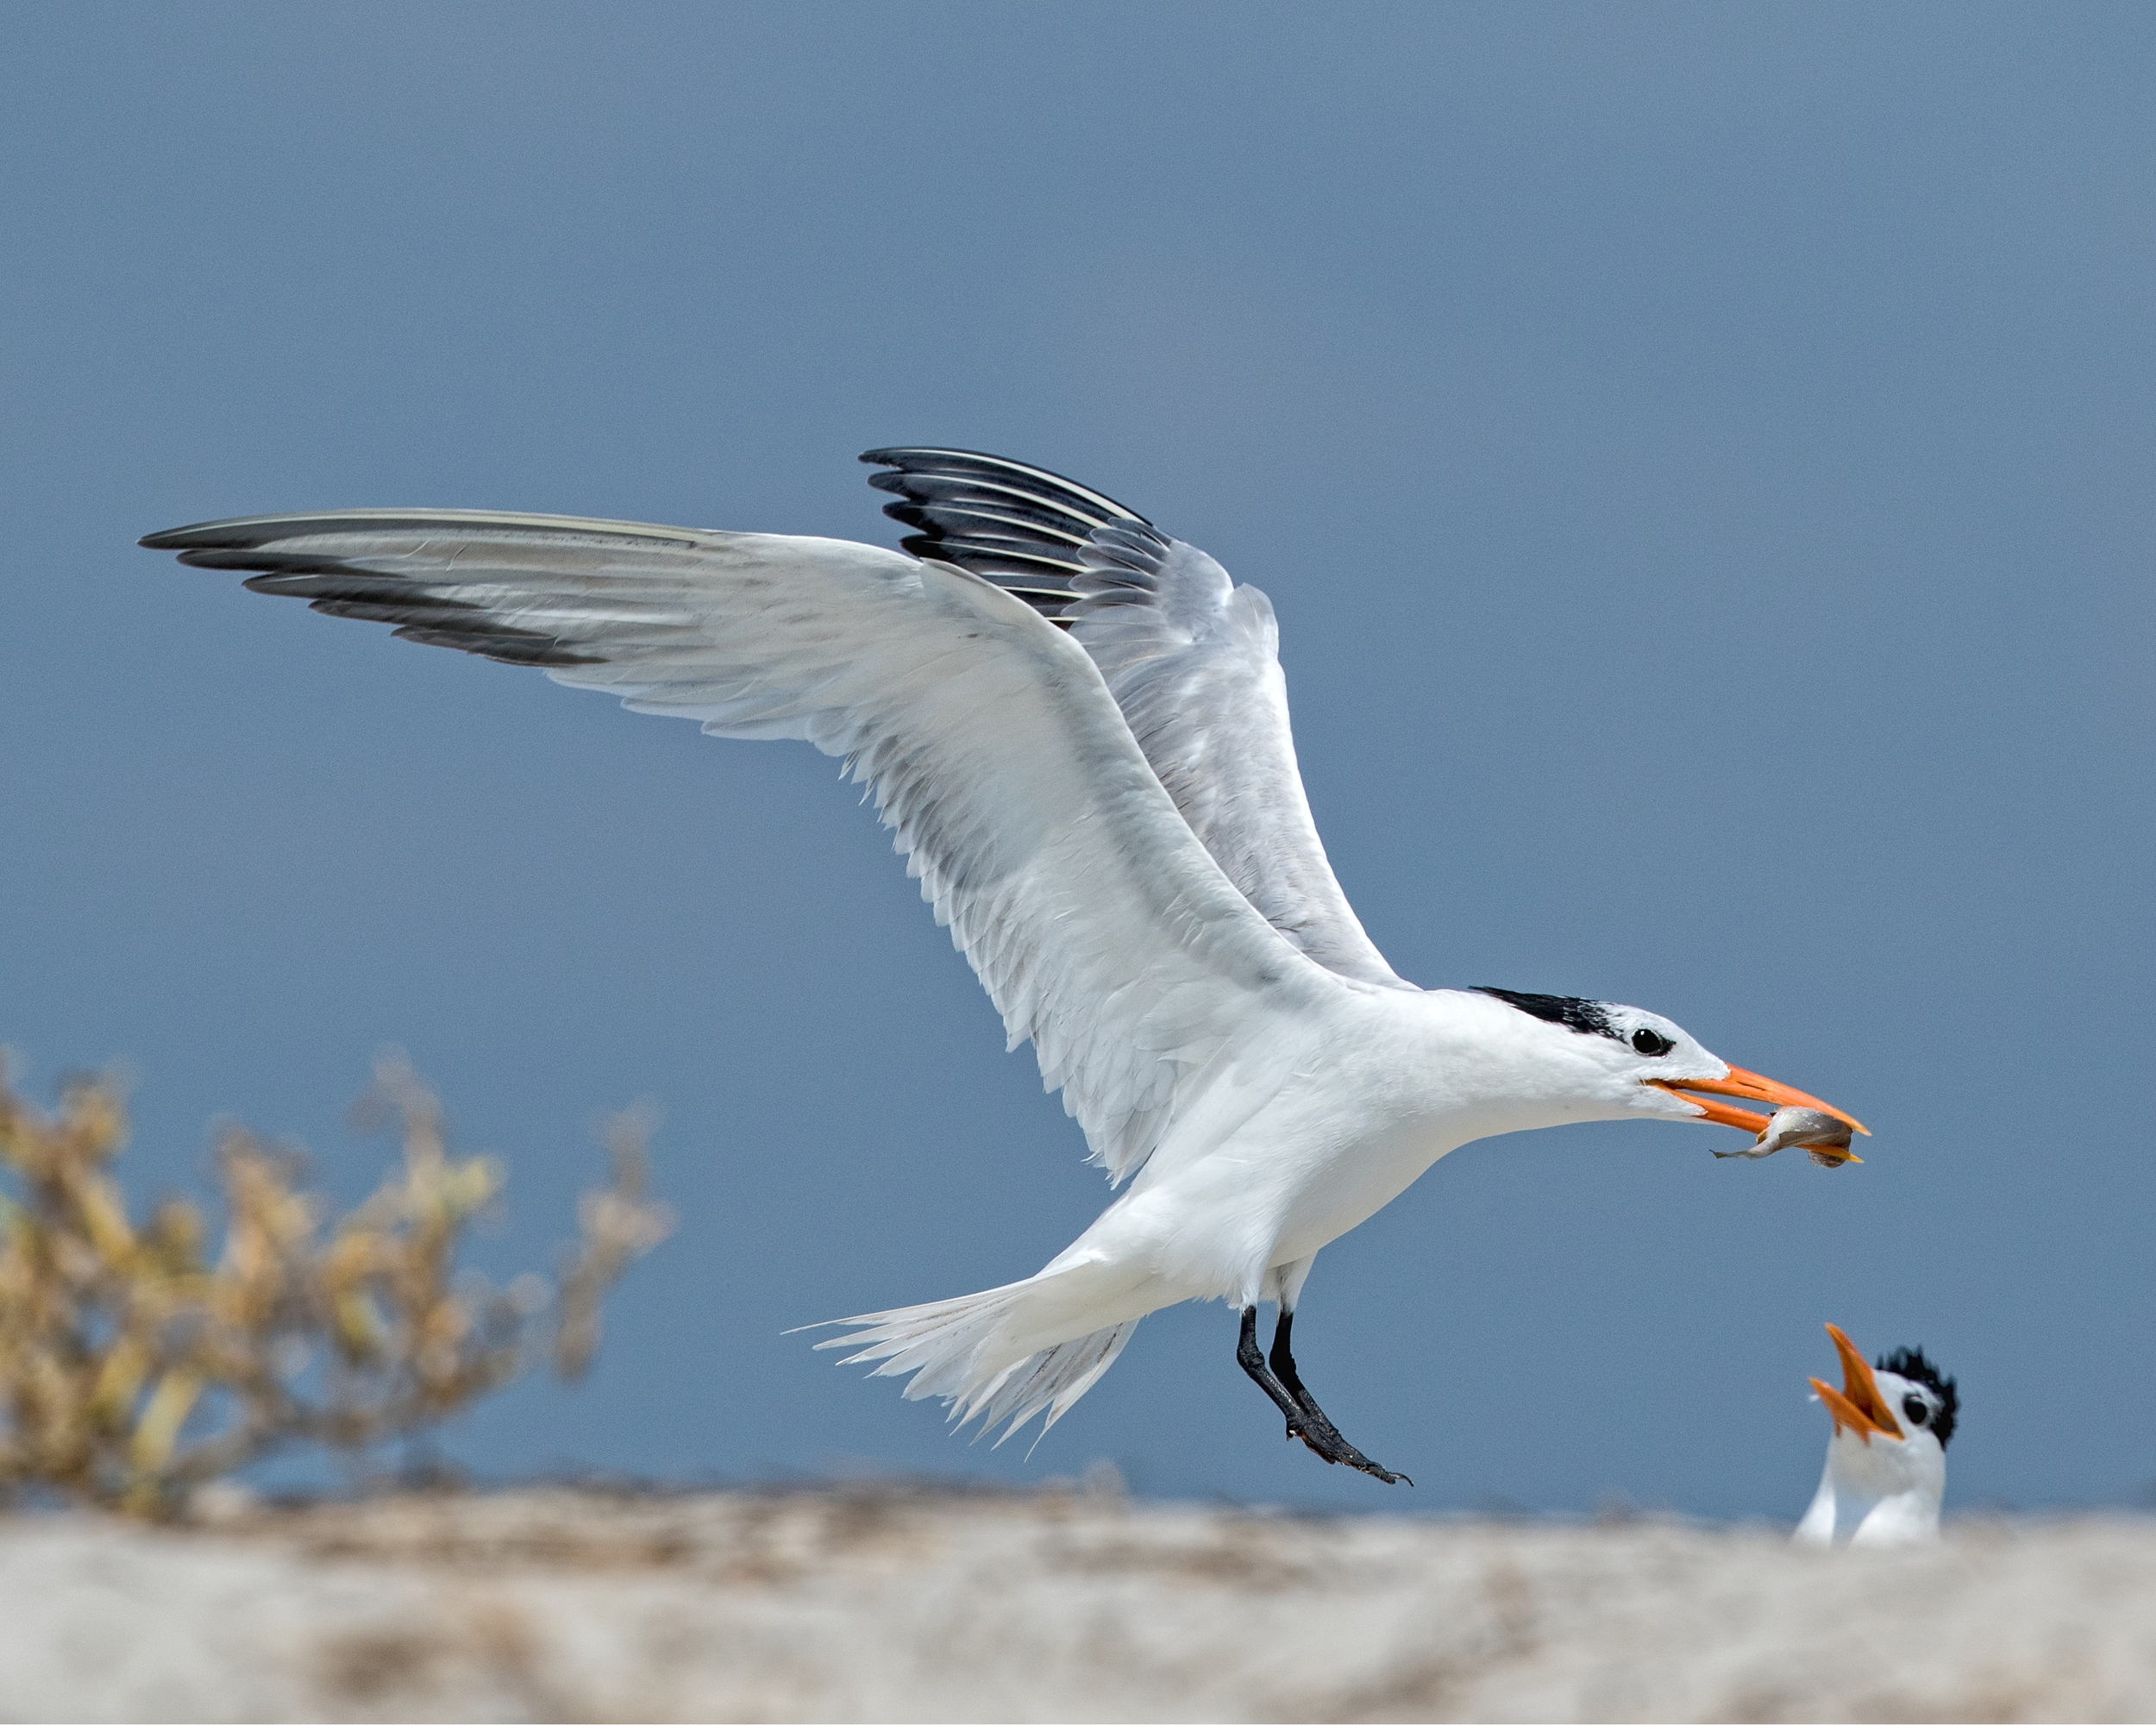 The parent Royal Tern returns with another meal..